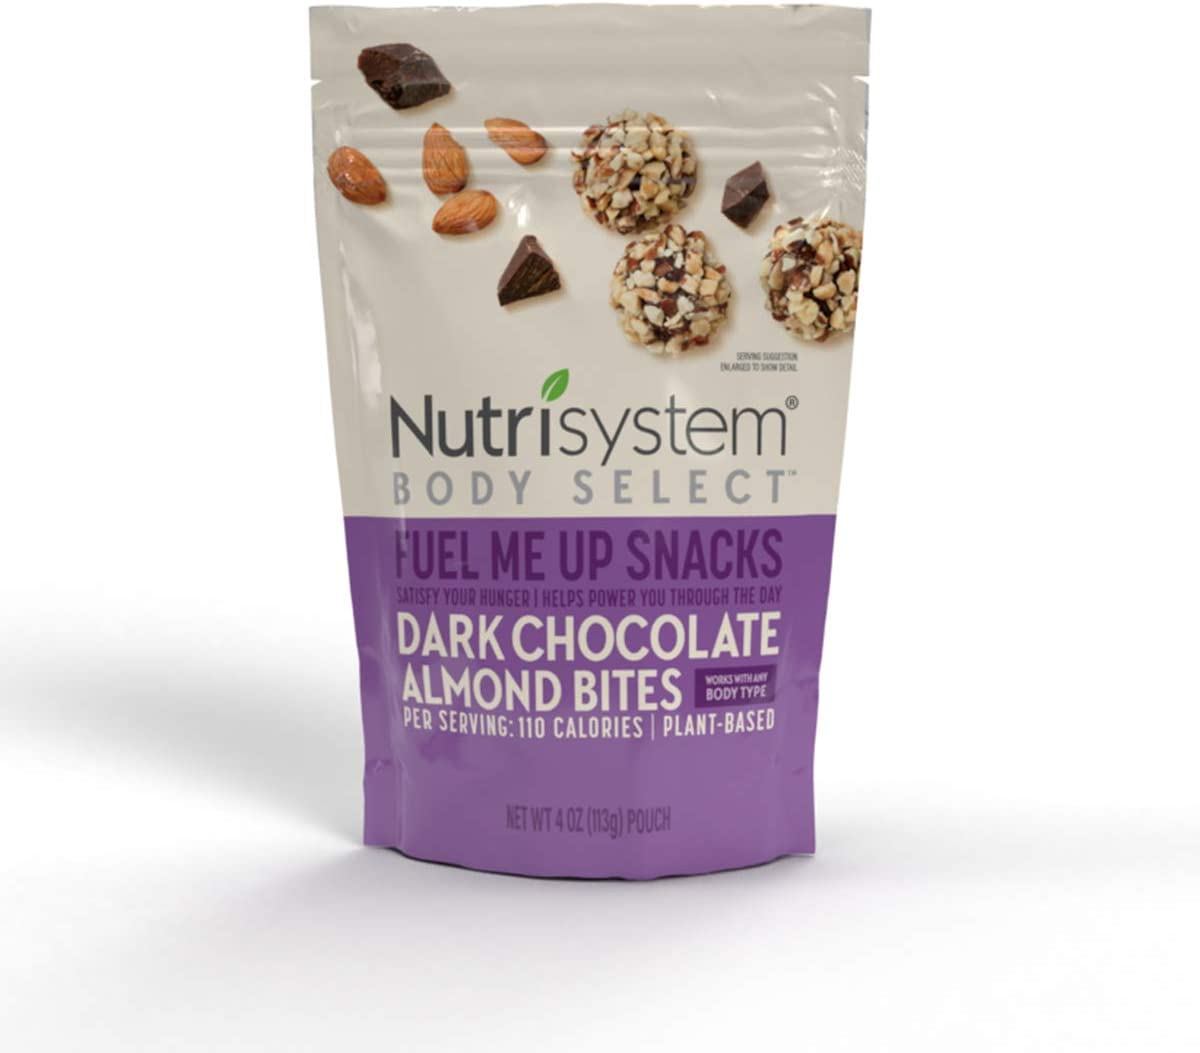 Nutrisystem® Body Select™ Fuel Me Up Snacks: Dark Chocolate Almond Bites, 6ct, Delicious Plant-Based Snacks That Satisfy Midday Hunger